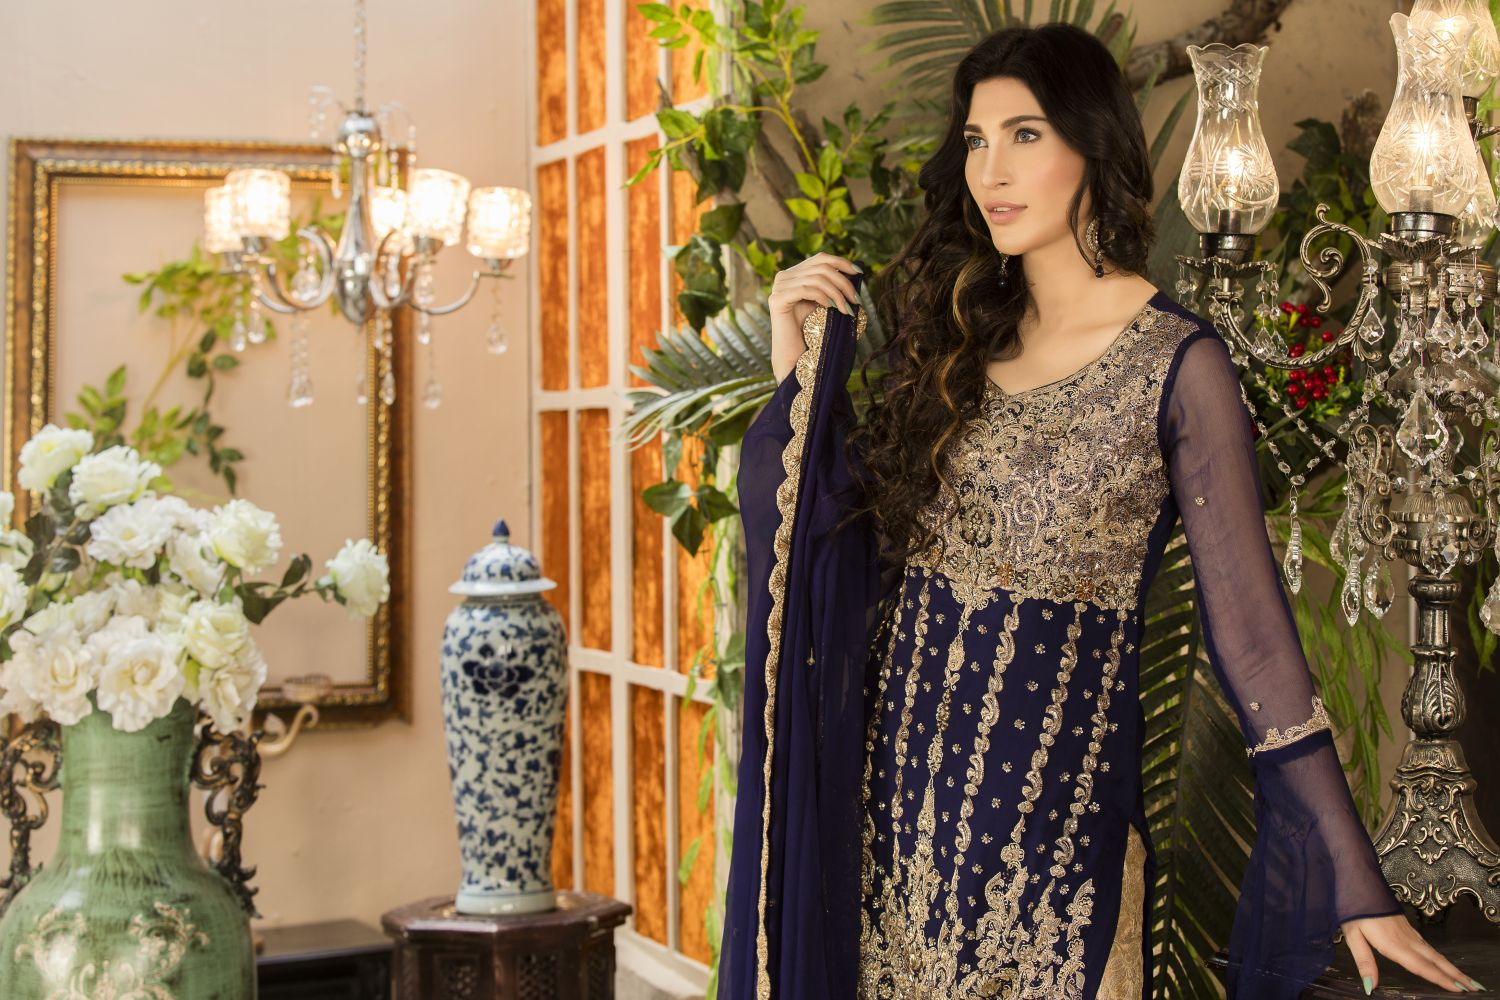 Beige Dress Picture Collection: EXCLUSIVE NAVY BLUE AND BEIGE DRESS